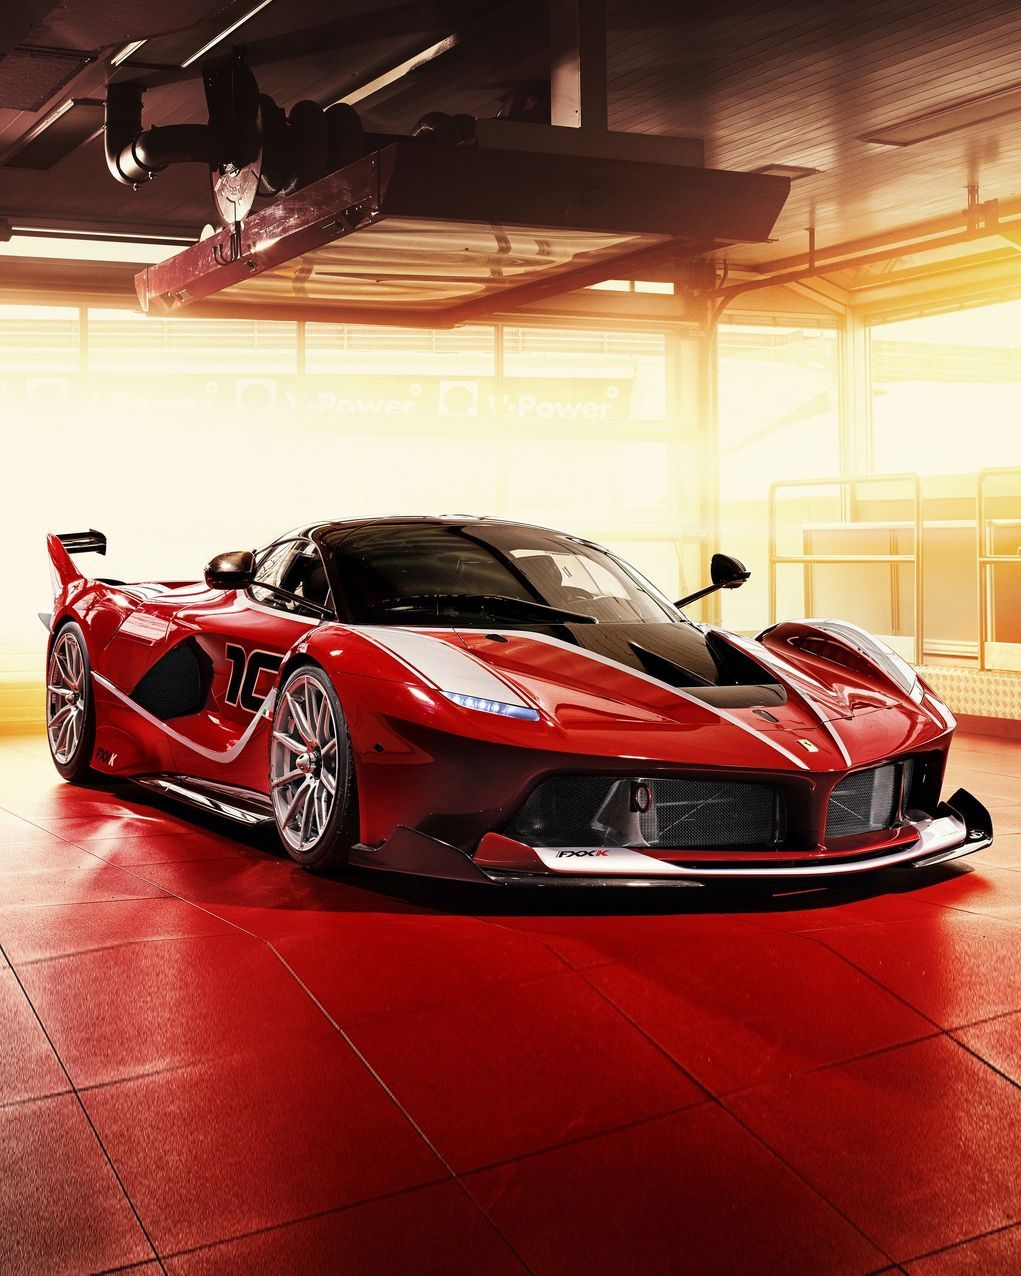 Ferrari Fxx K Evo The Man Ferrarifxx Ferrari Fxx K Evo The Man Best Luxury Cars Ferrari Fxxk Ferrari Car